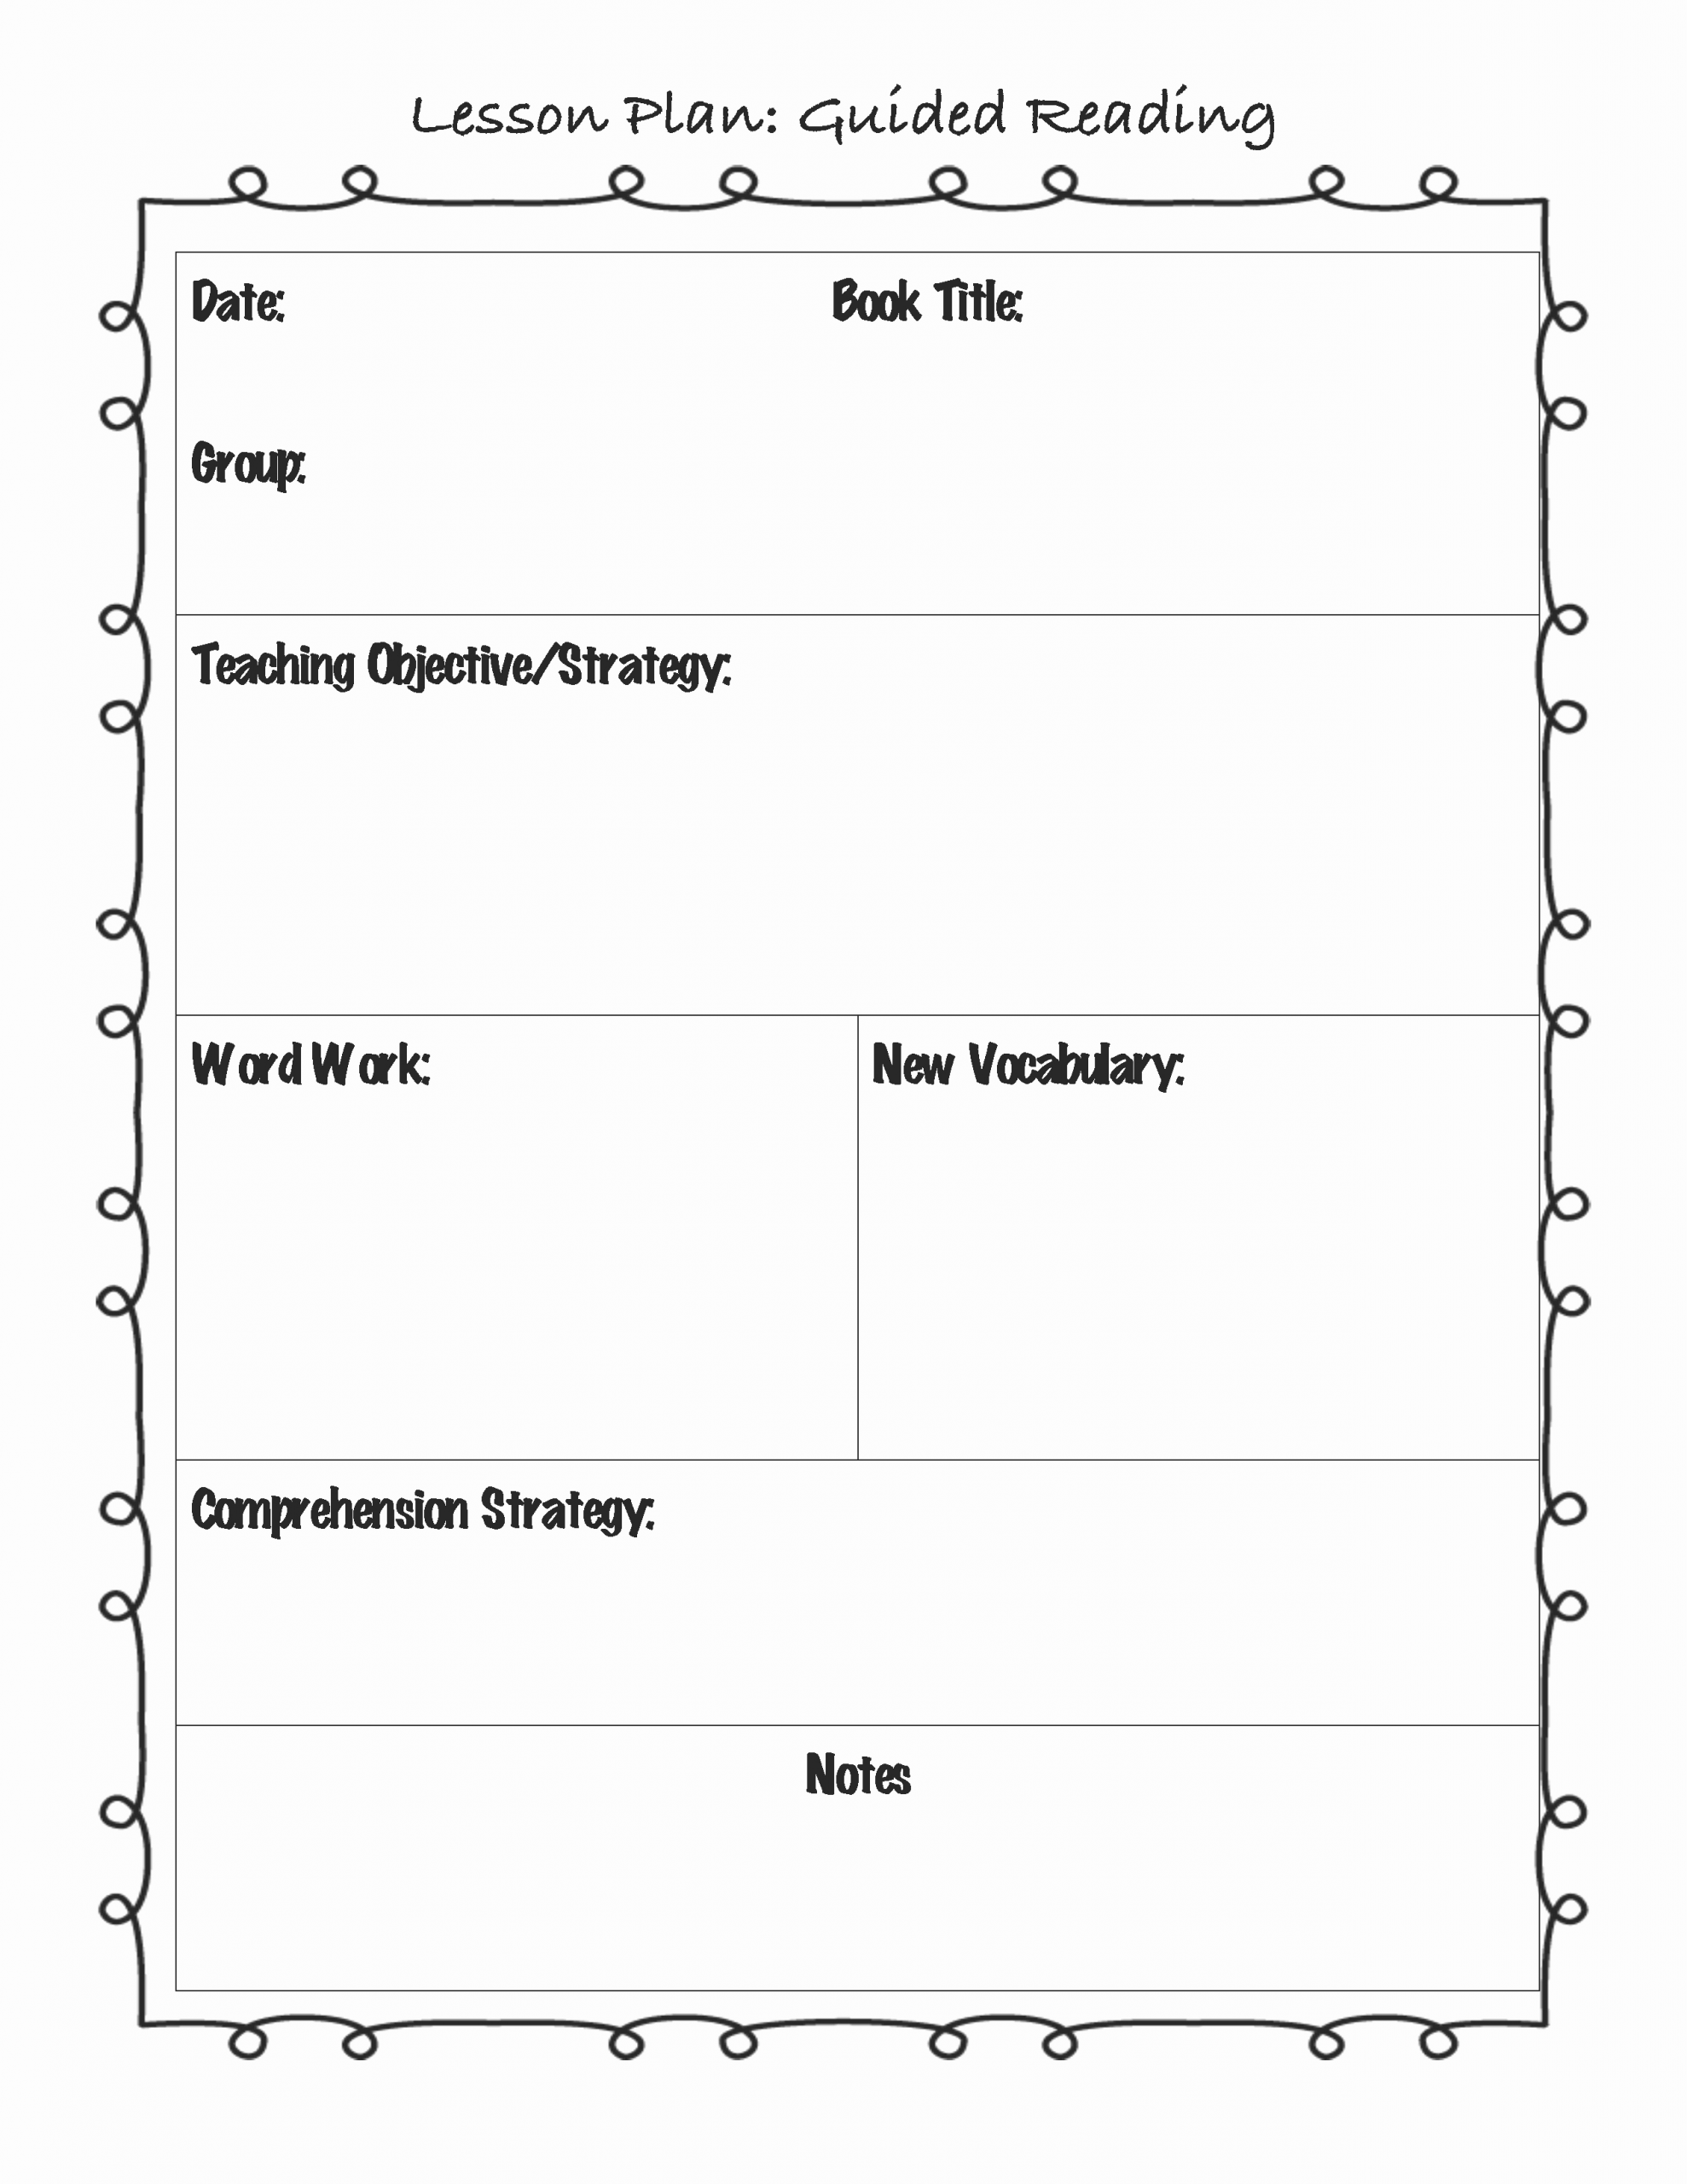 Teachers College Lesson Plan Template Best Of Guided Reading Lesson Plan Template